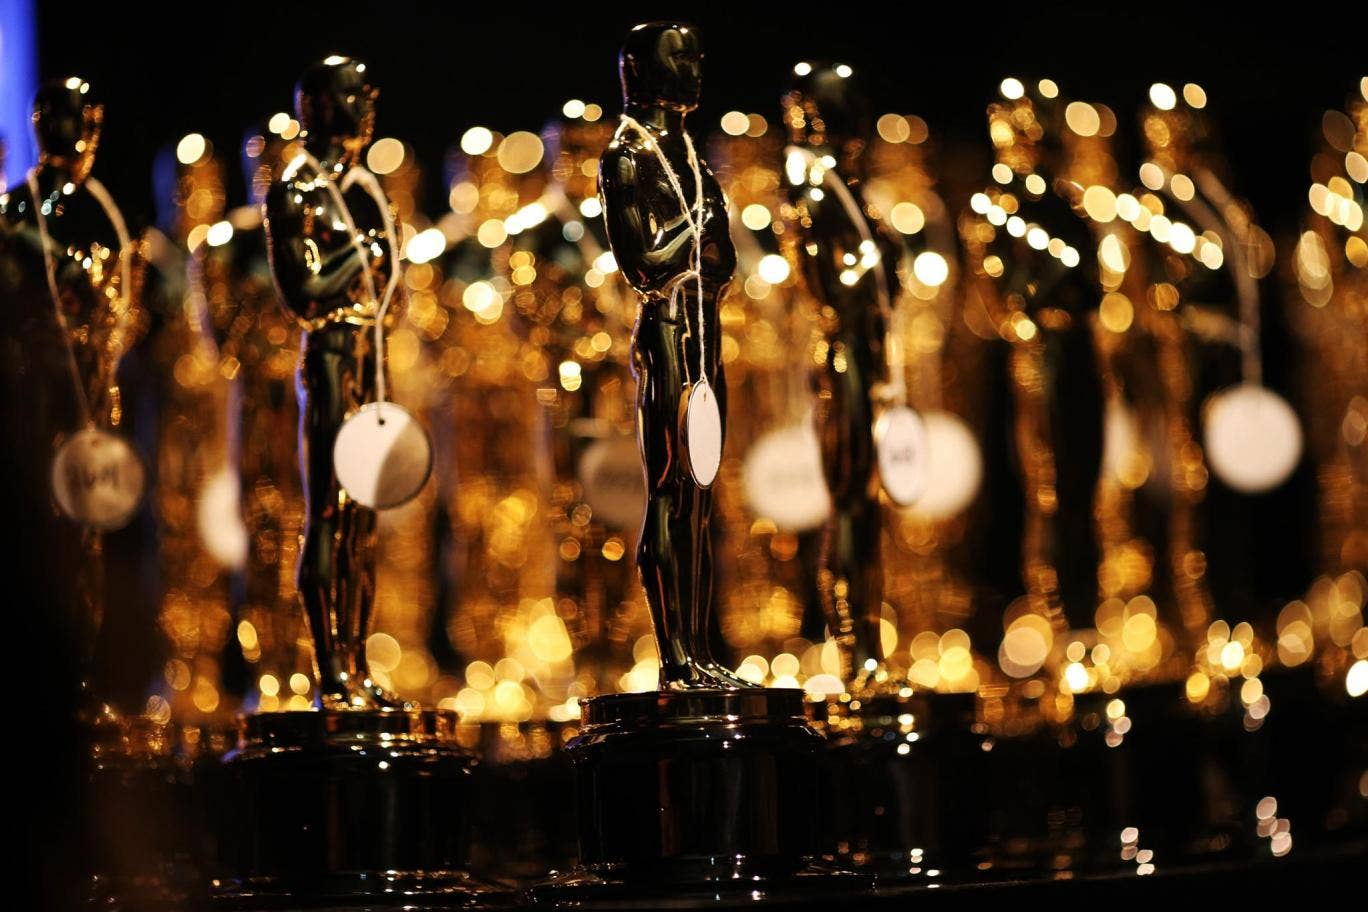 Oscars statuettes at the 2013: nominees who didn't get one still went home with $45,000 goodie bags